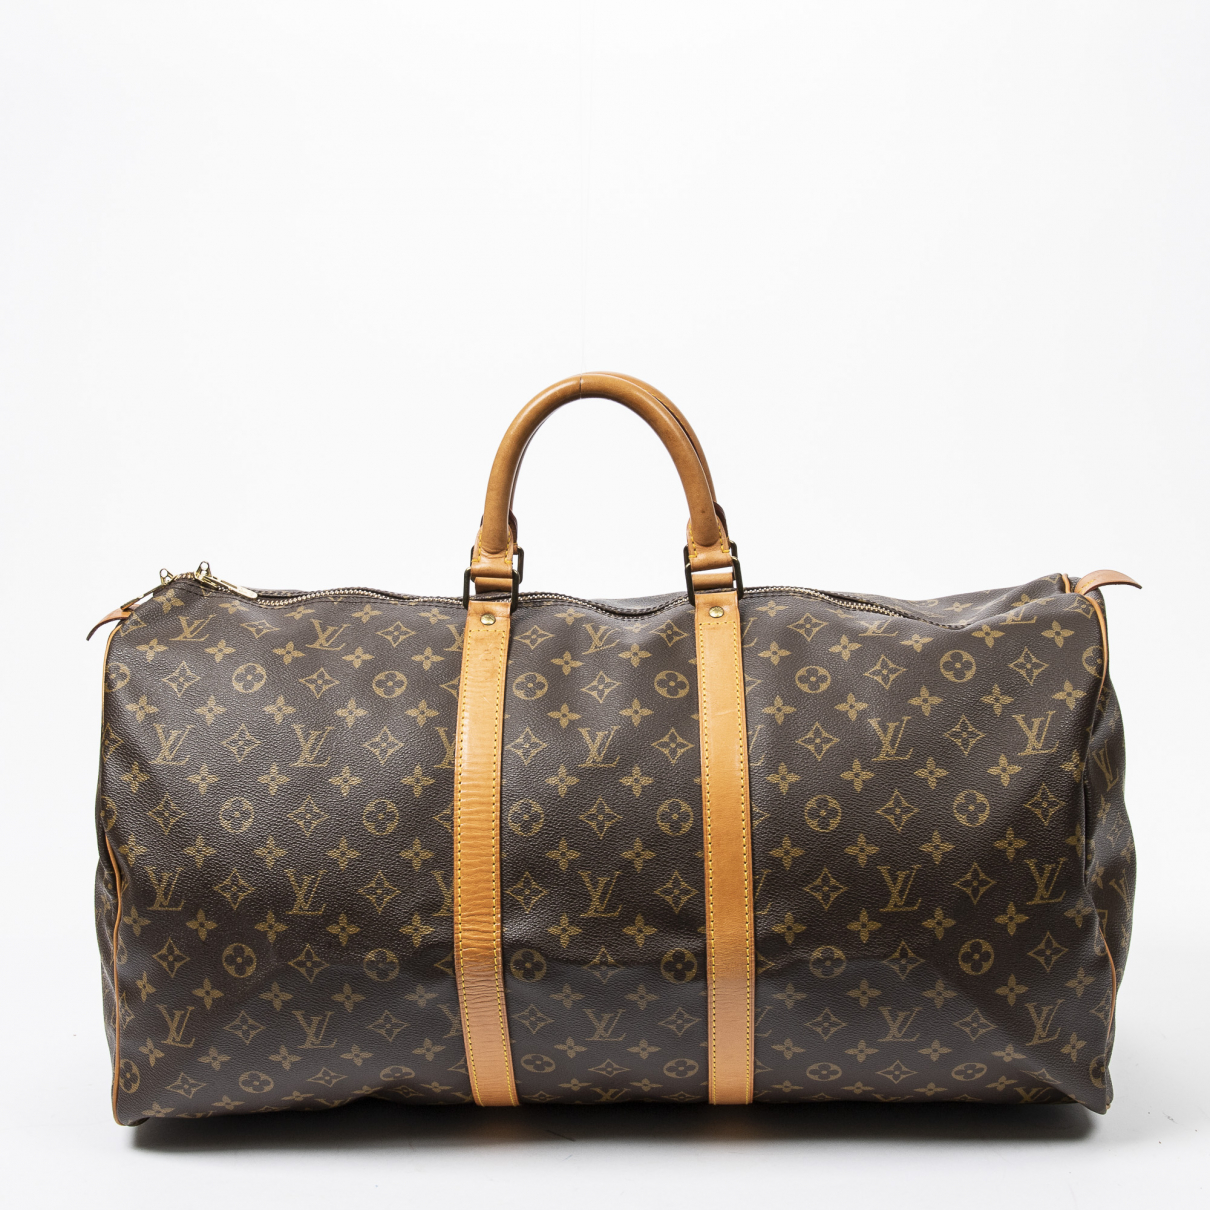 Louis Vuitton Keepall Reisetasche in  Braun Baumwolle